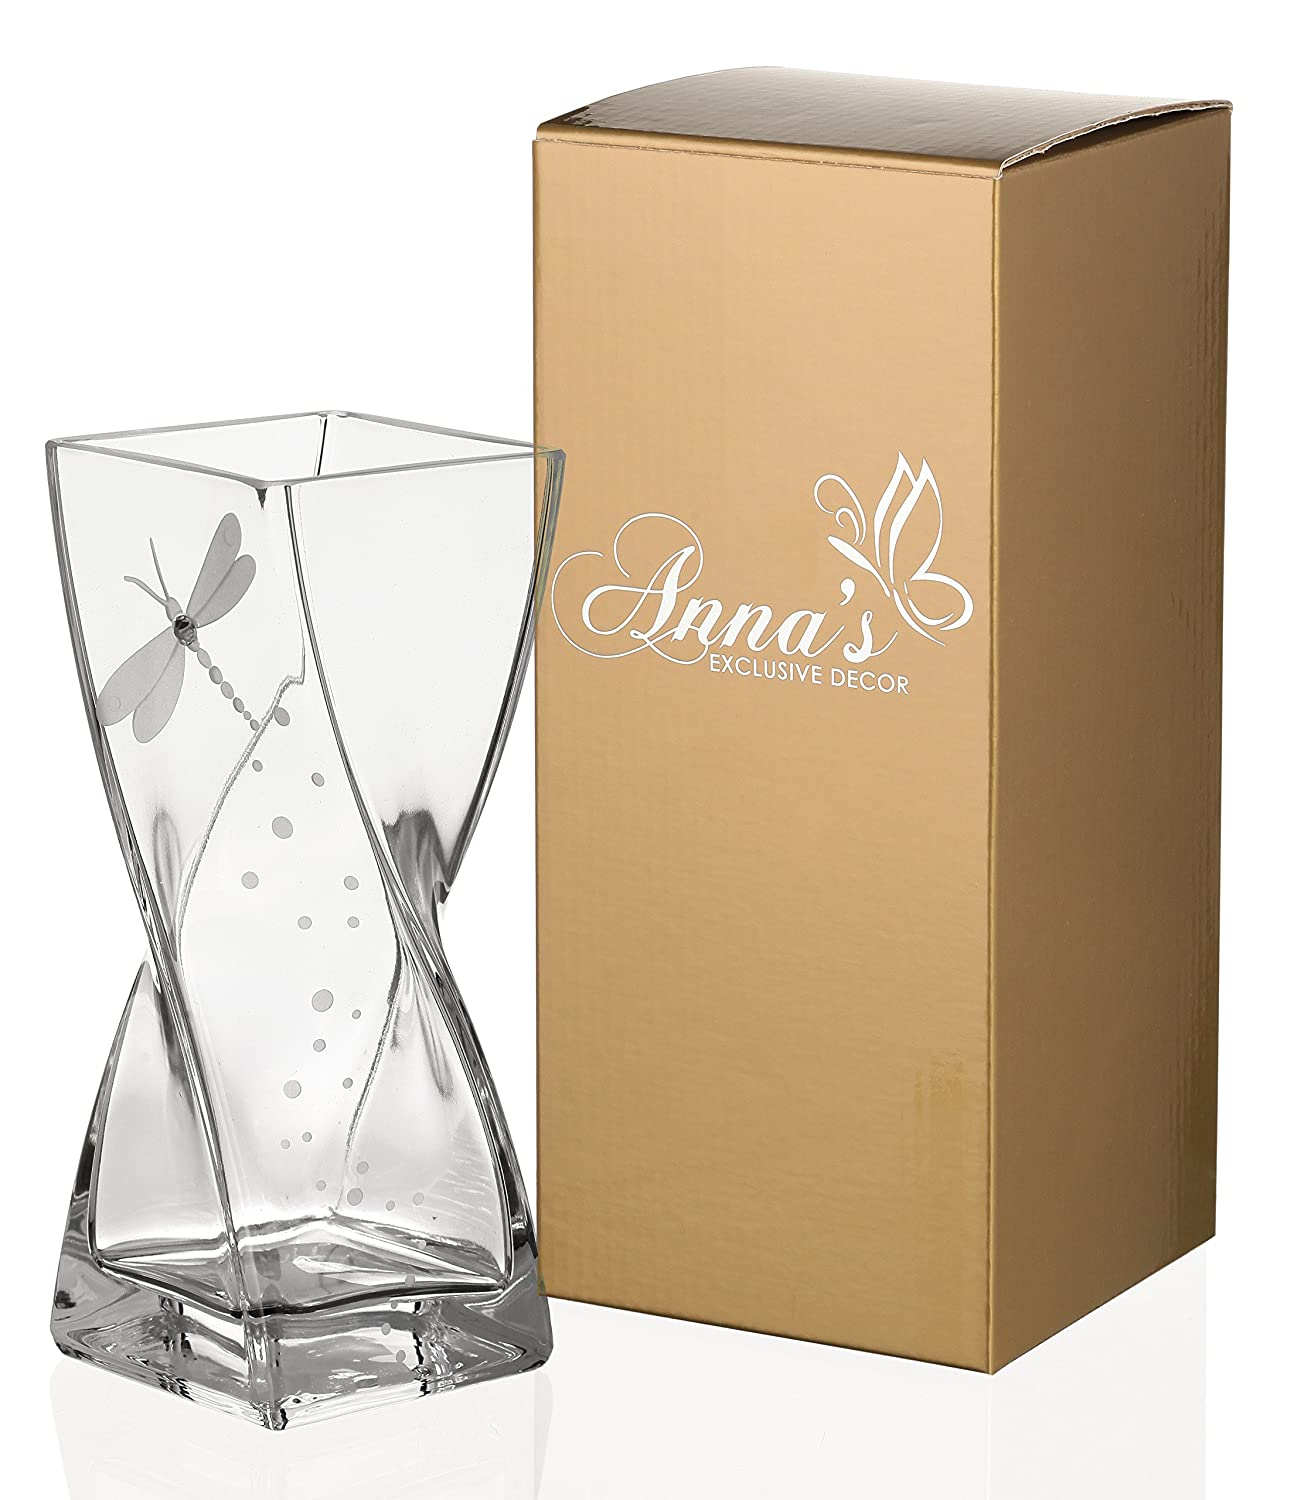 Dragonfly Vase - Handmade Glass Vase Decorated with Swarovski Crystal and Sandblasted Dragonfly – Presented in a Golden Gift Box – Diamond Collection - Clear, 7.9 inch (20 cm)